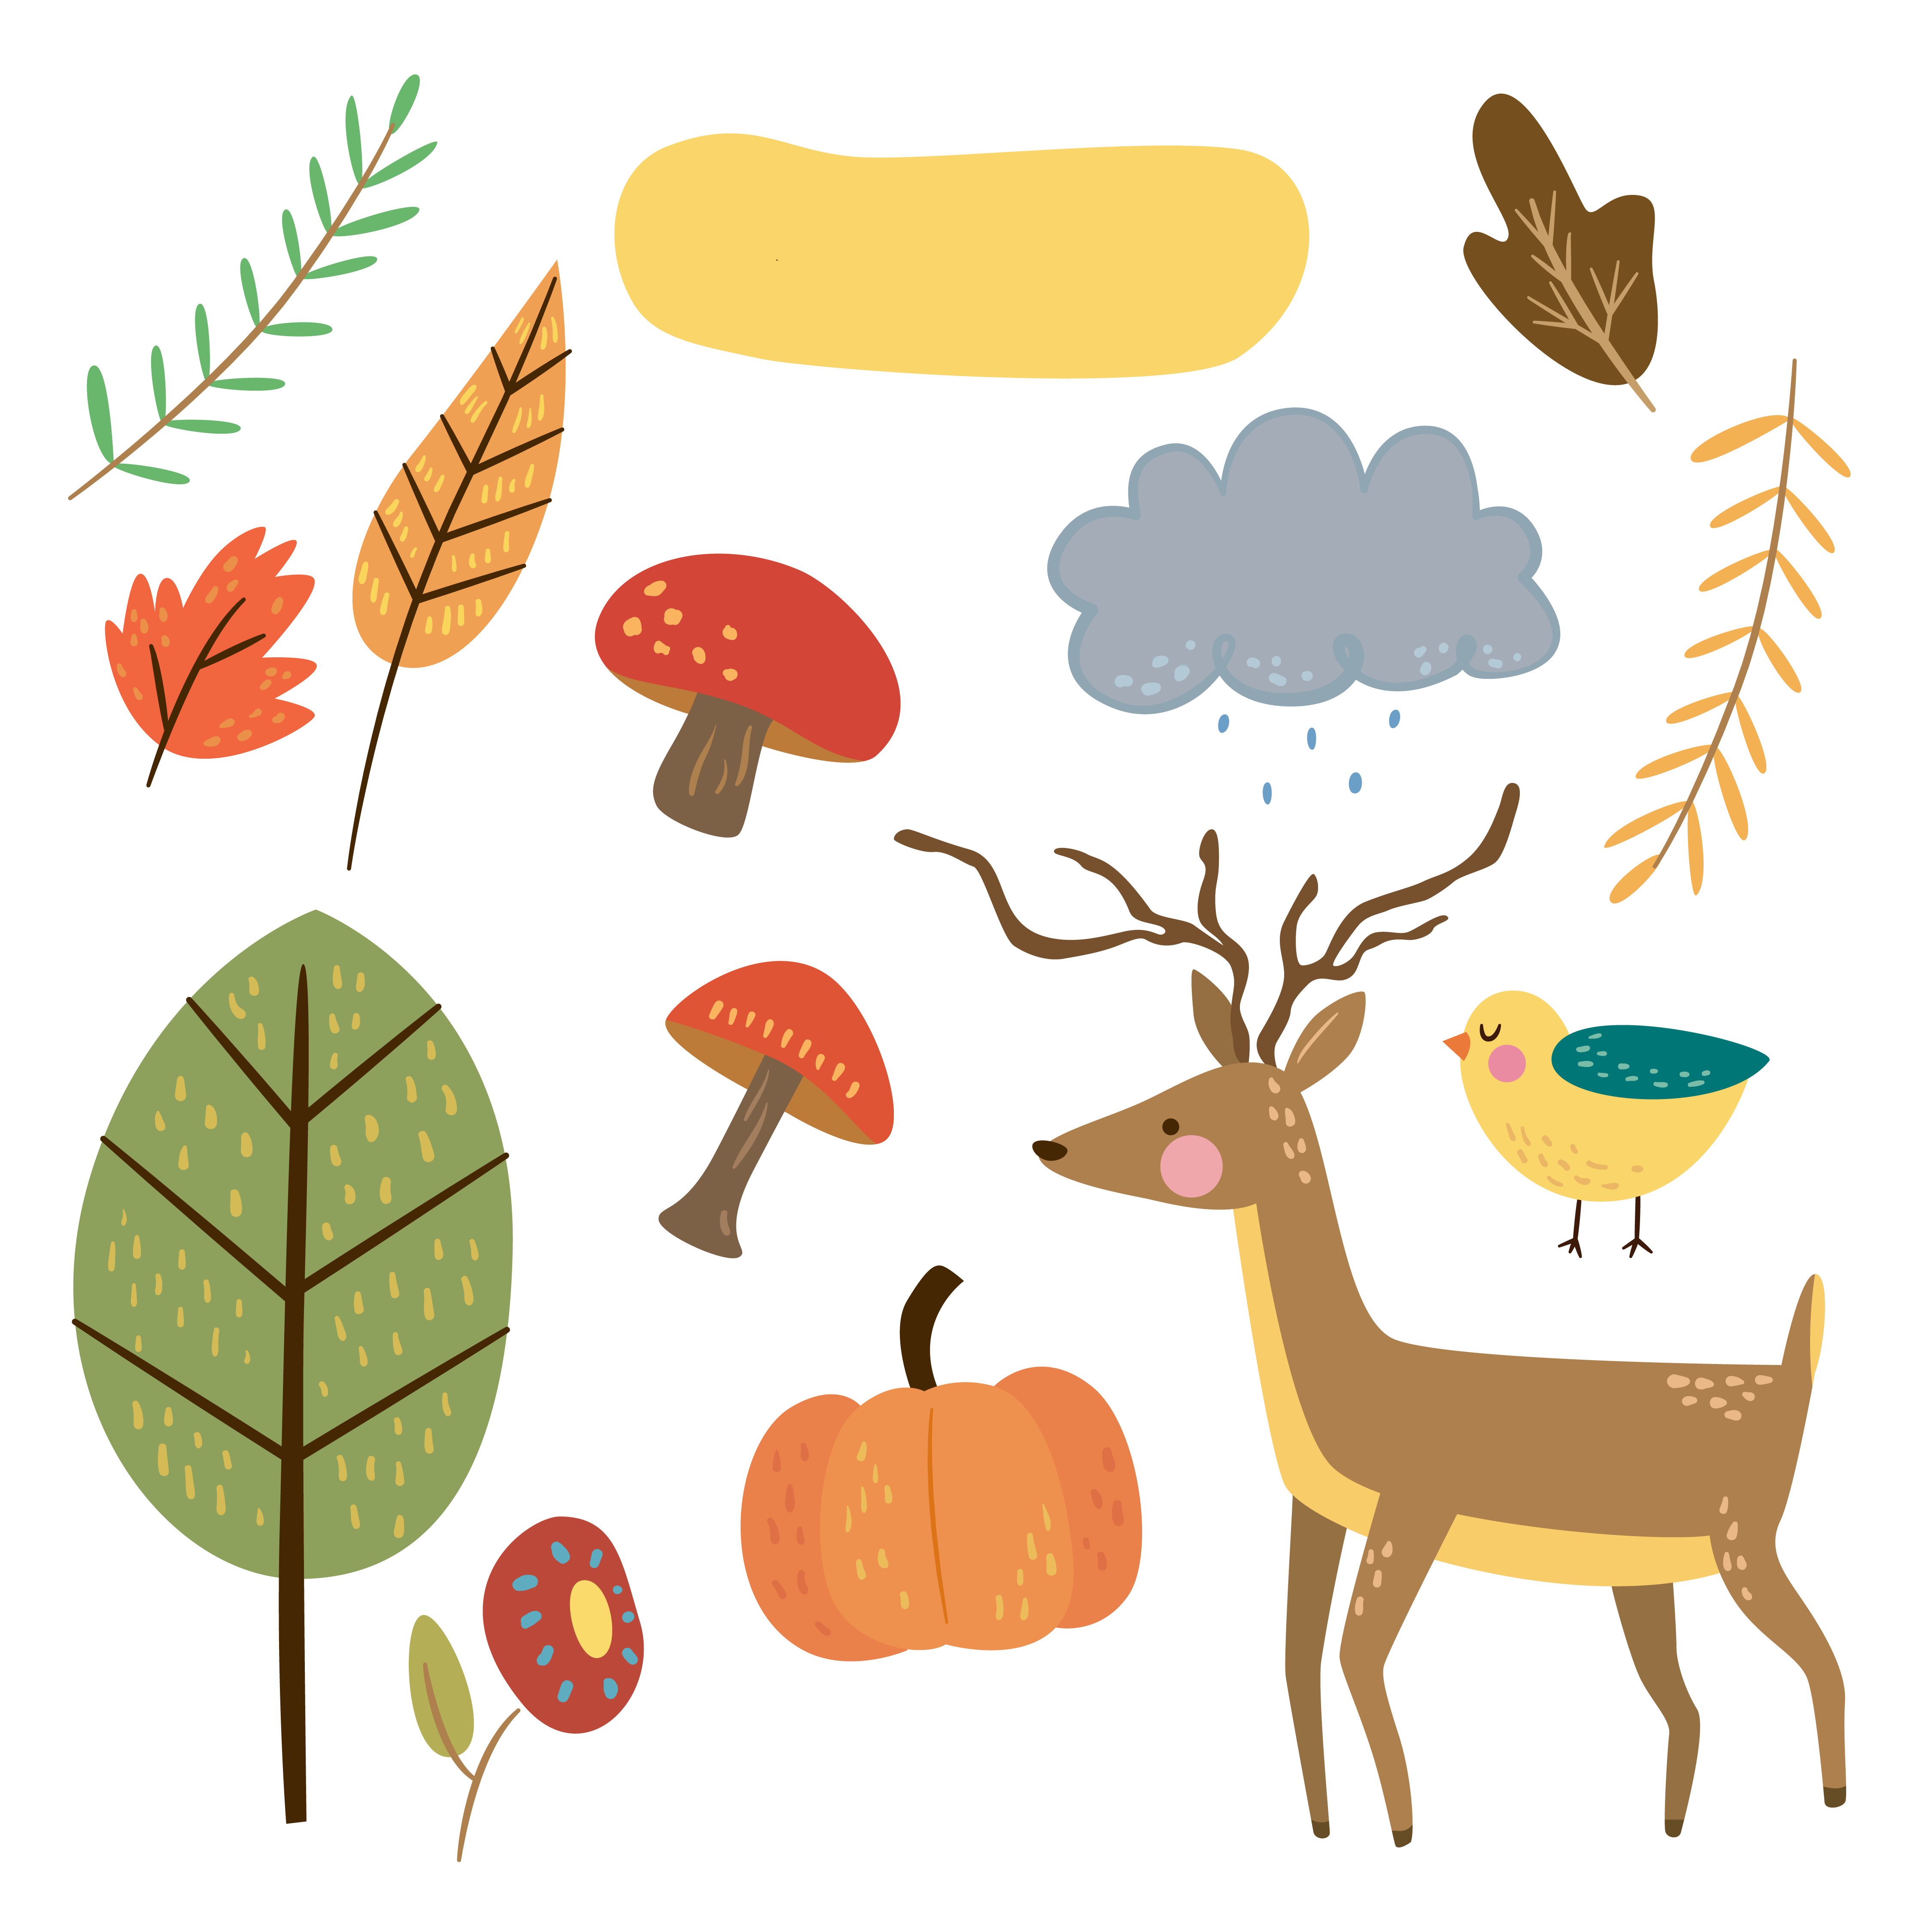 Fall clipart sticker, Fall sticker Transparent FREE for.